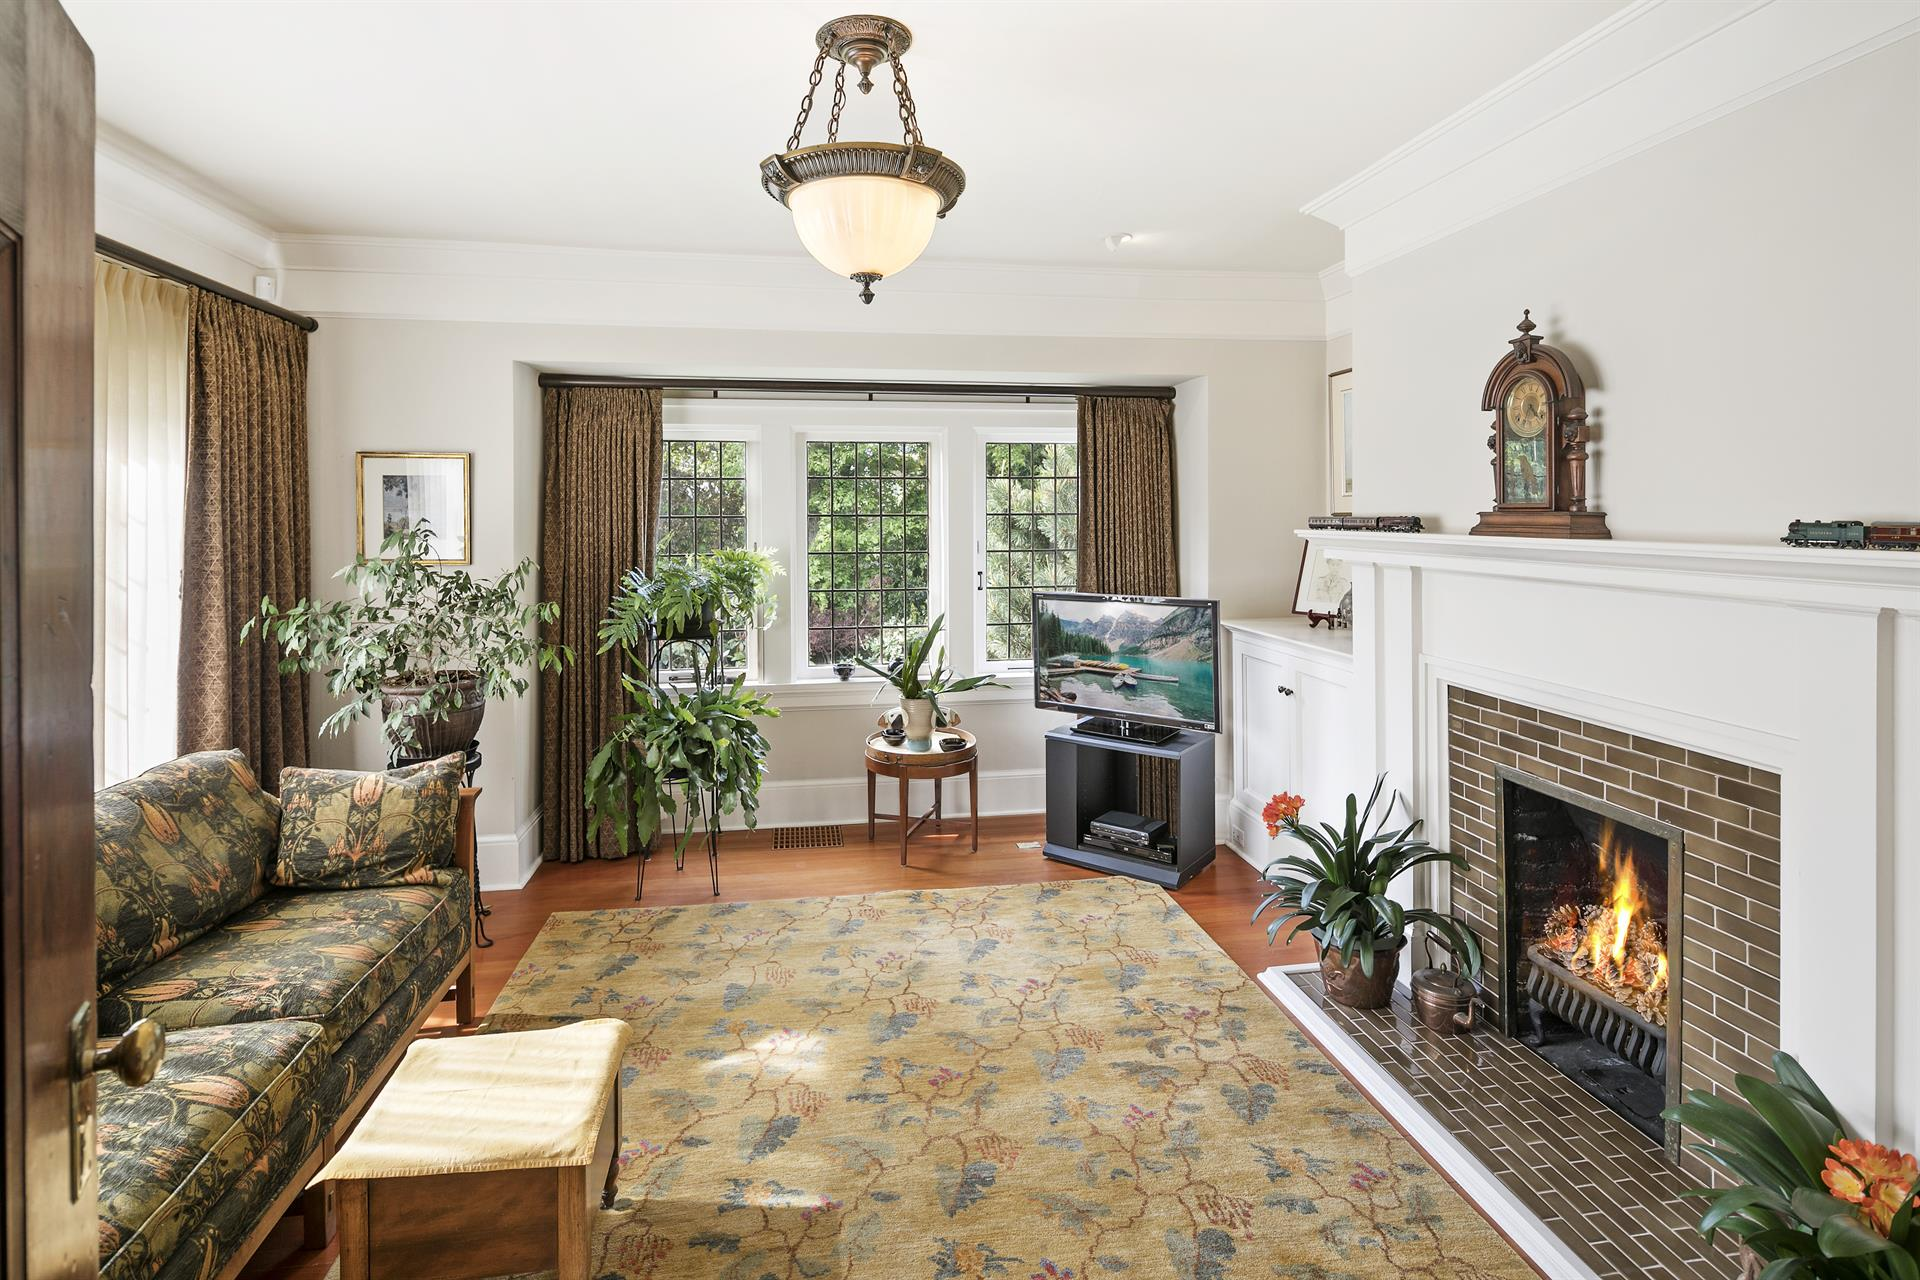 Additional photo for property listing at 935 Foul Bay Rd Victoria, British Columbia,Canada